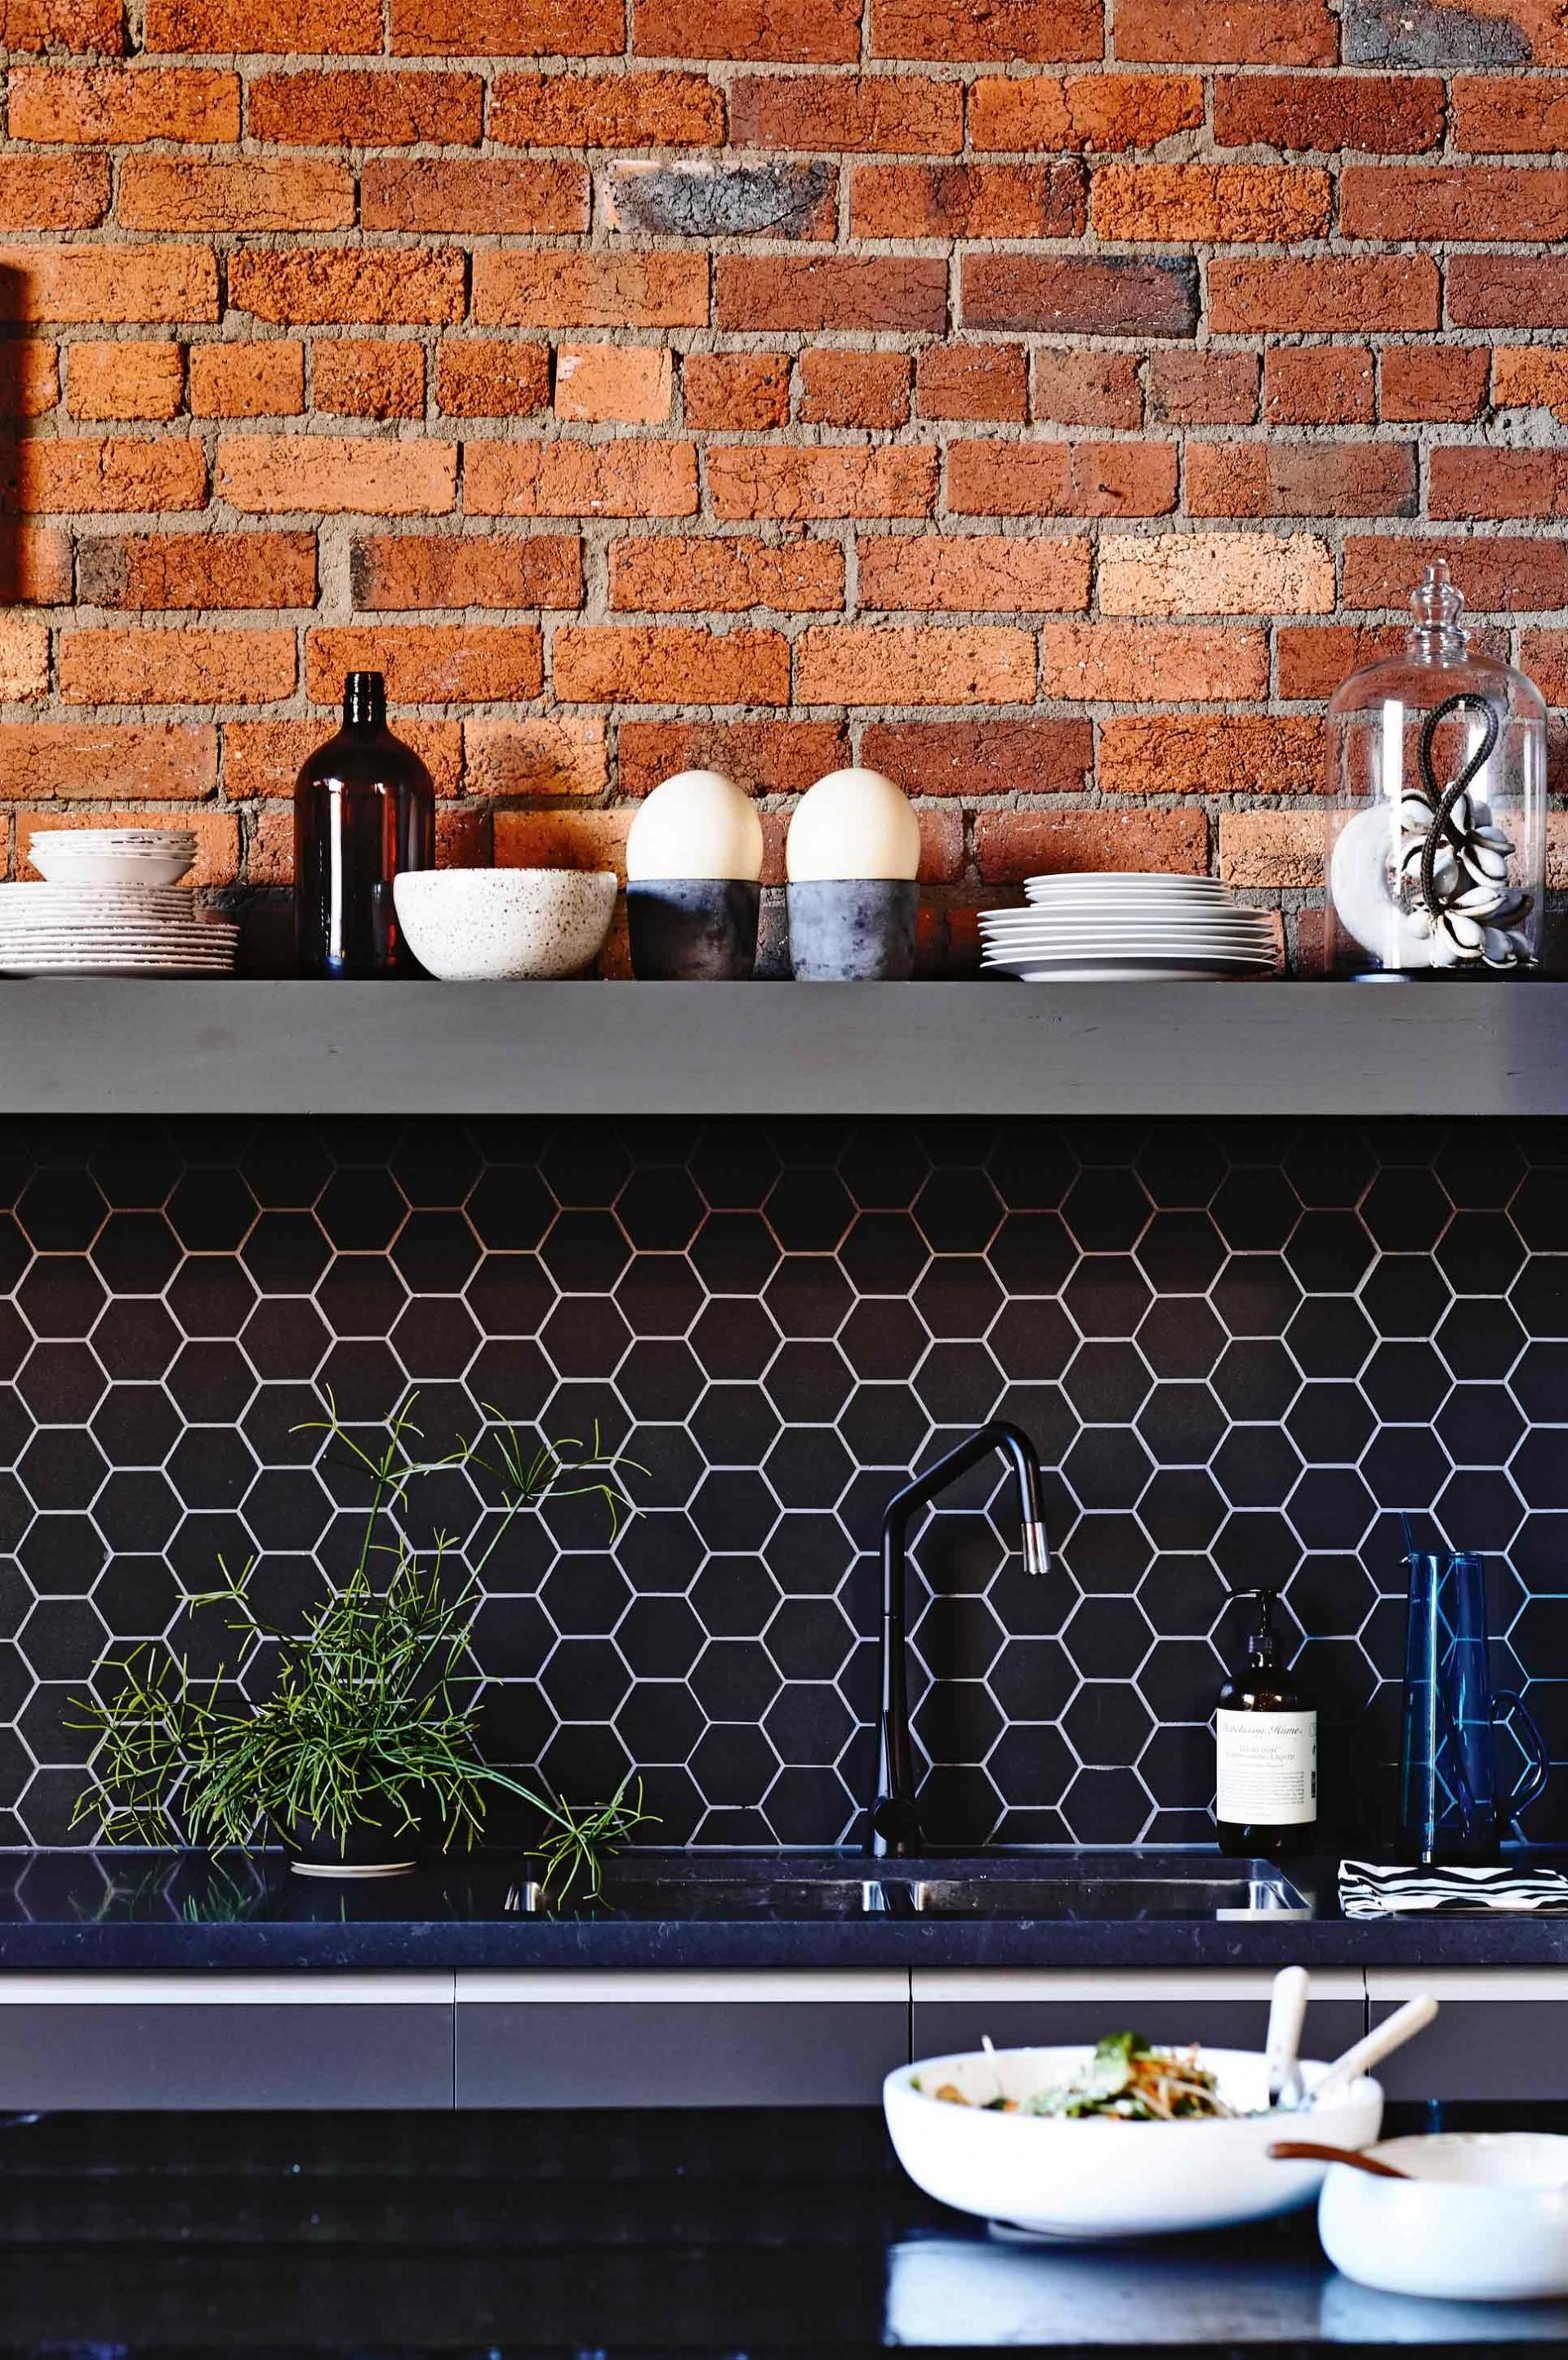 Kitchen Tiles And Splashbacks exposed-brick-black-hexagon-tile-splashback-kitchen-mar15